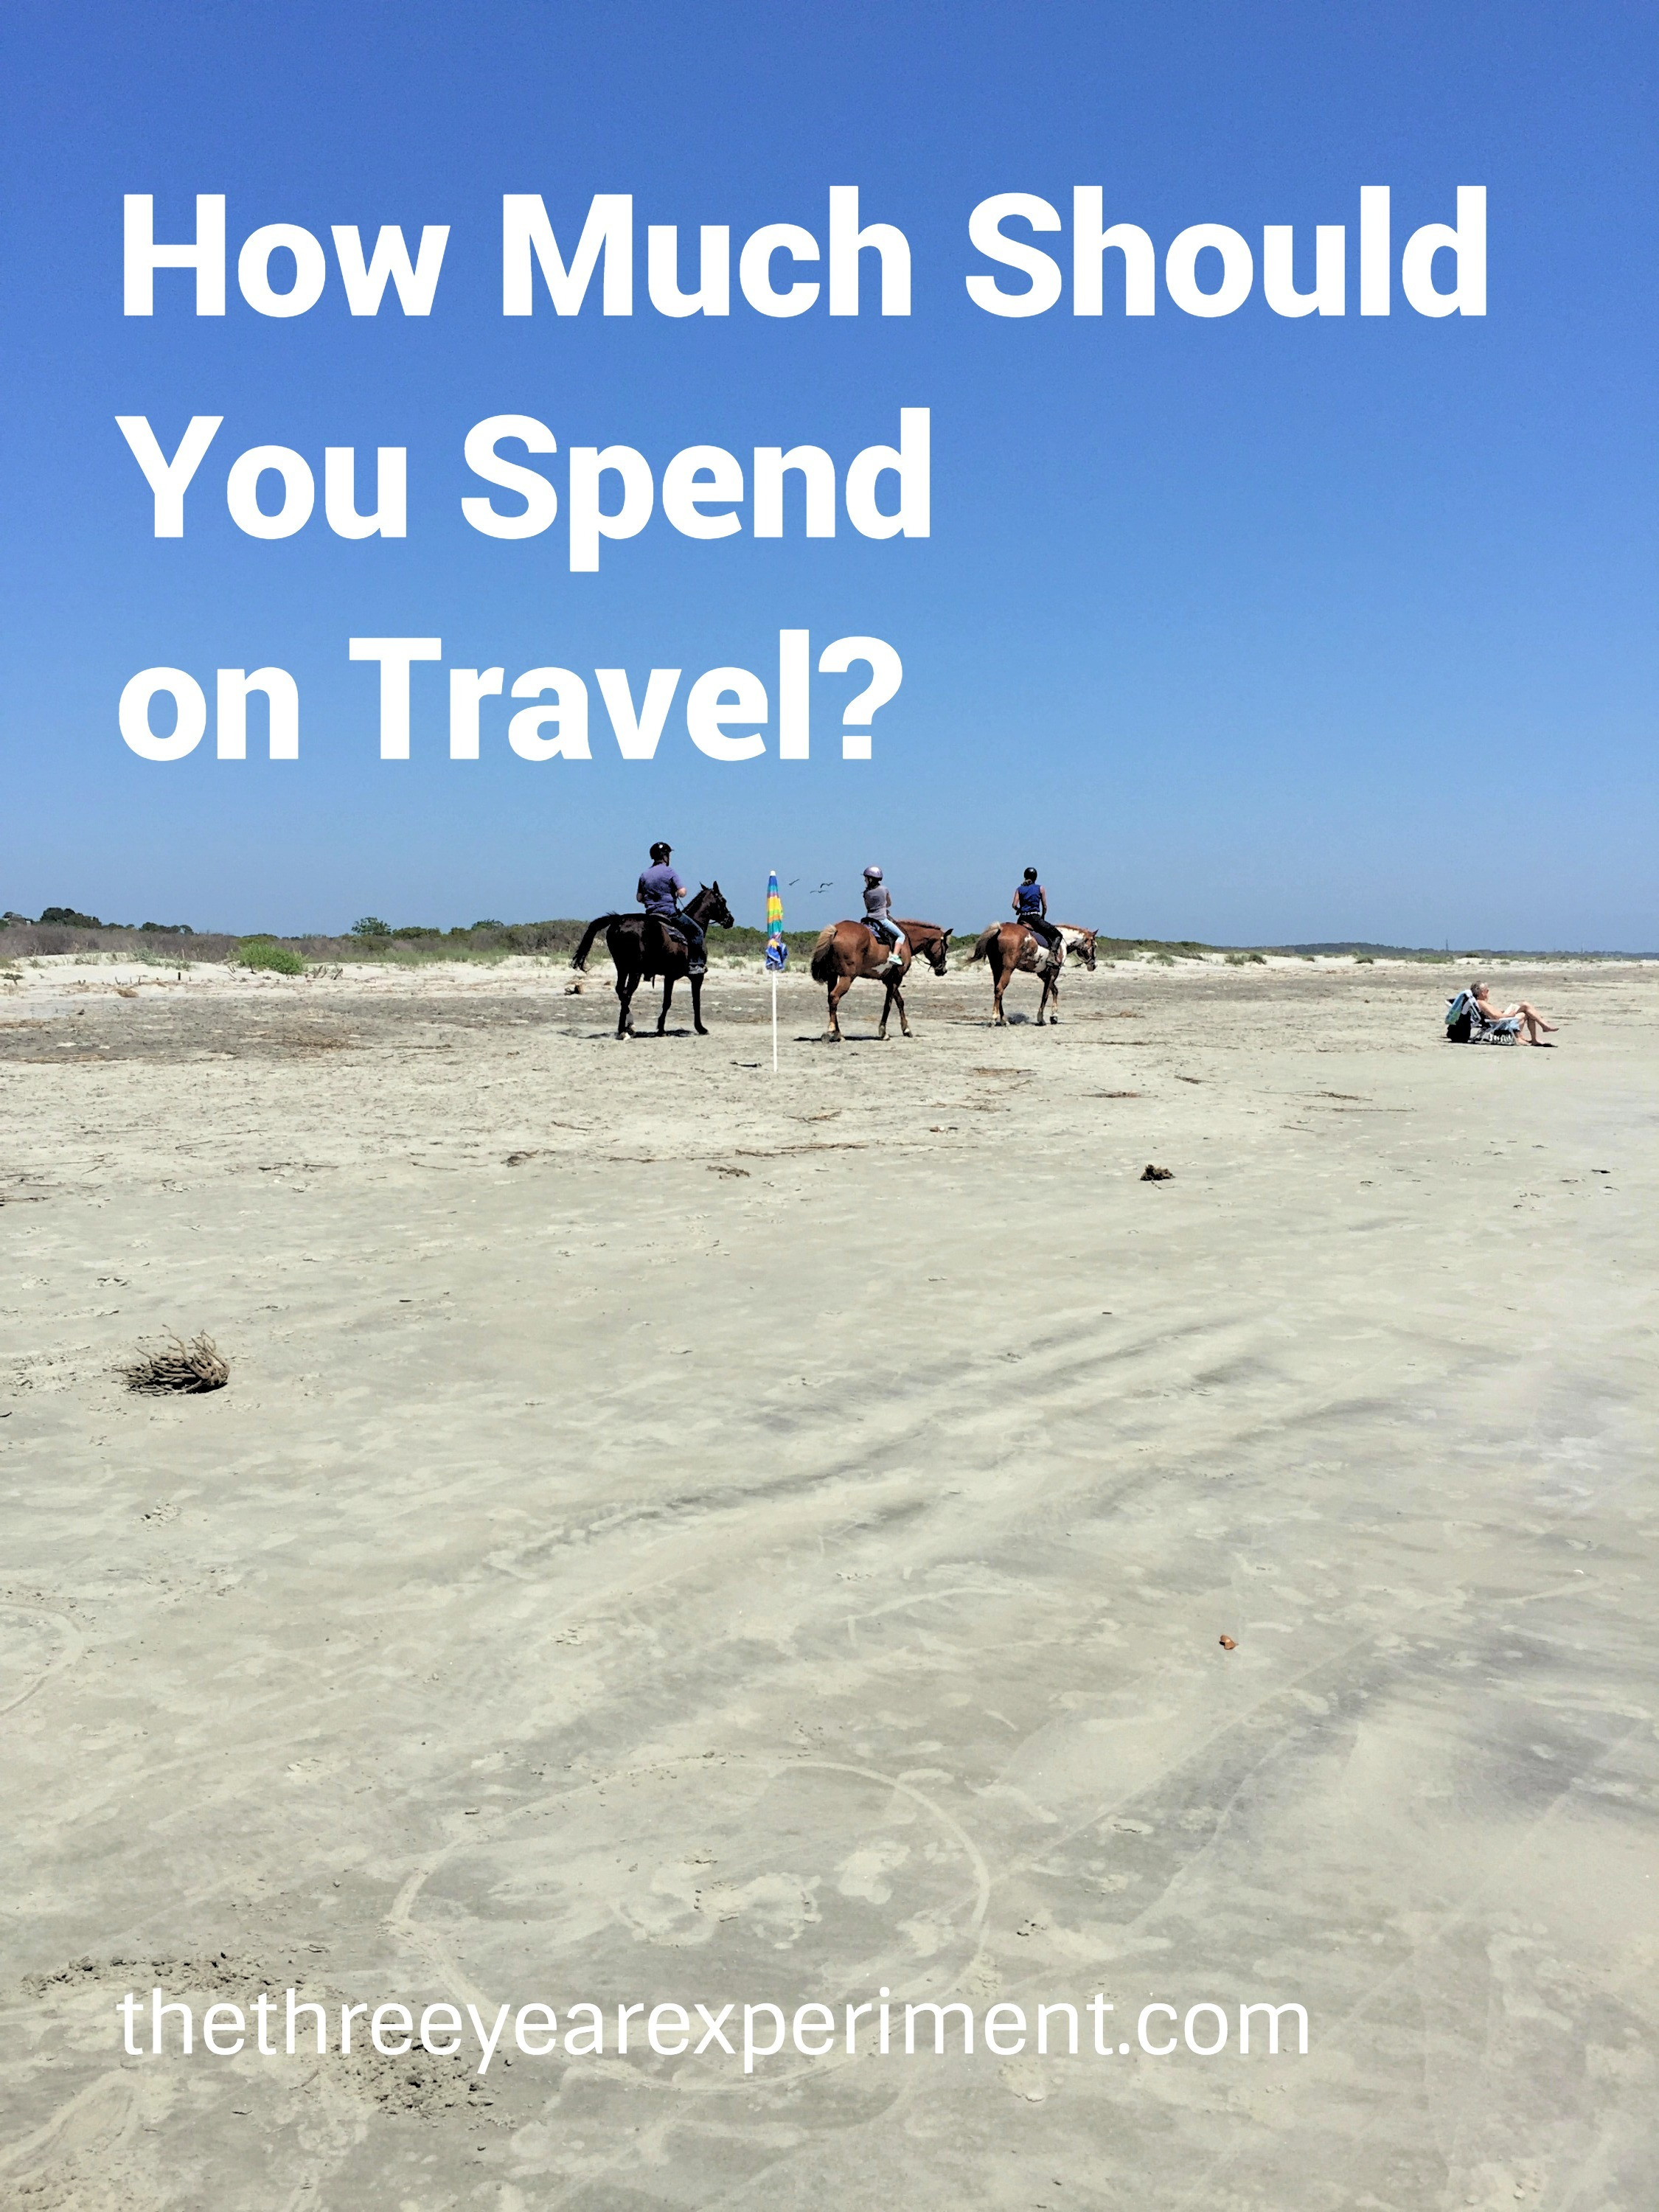 How Much Should You Spend on Travel? - THE THREE YEAR EXPERIMENT